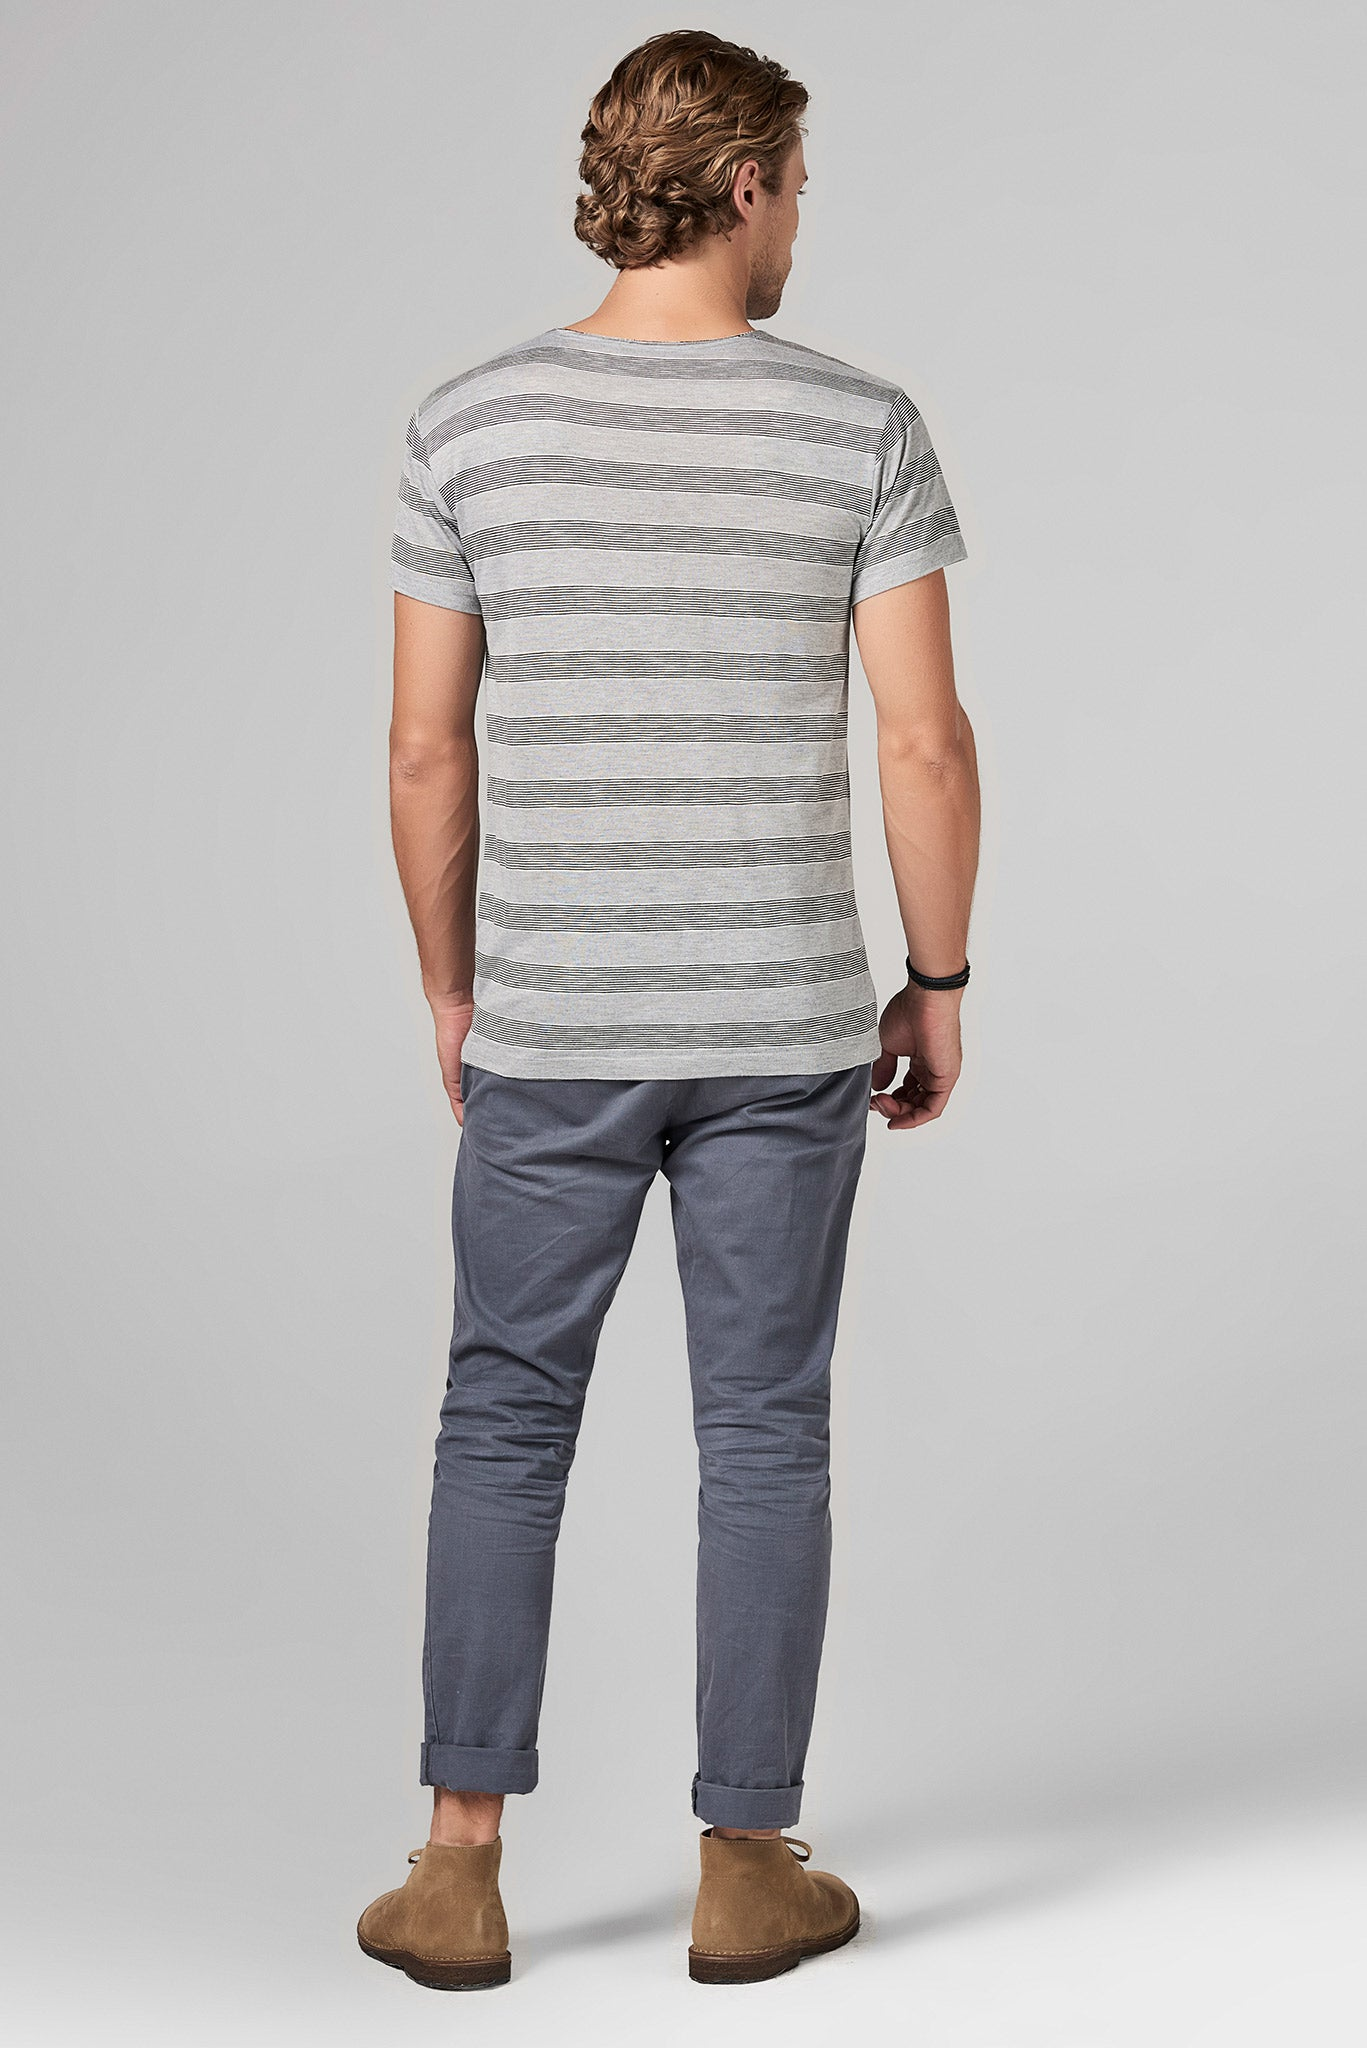 MEN'S POCKET SAILOR CREW NECK TEE - RETRO STRIPE